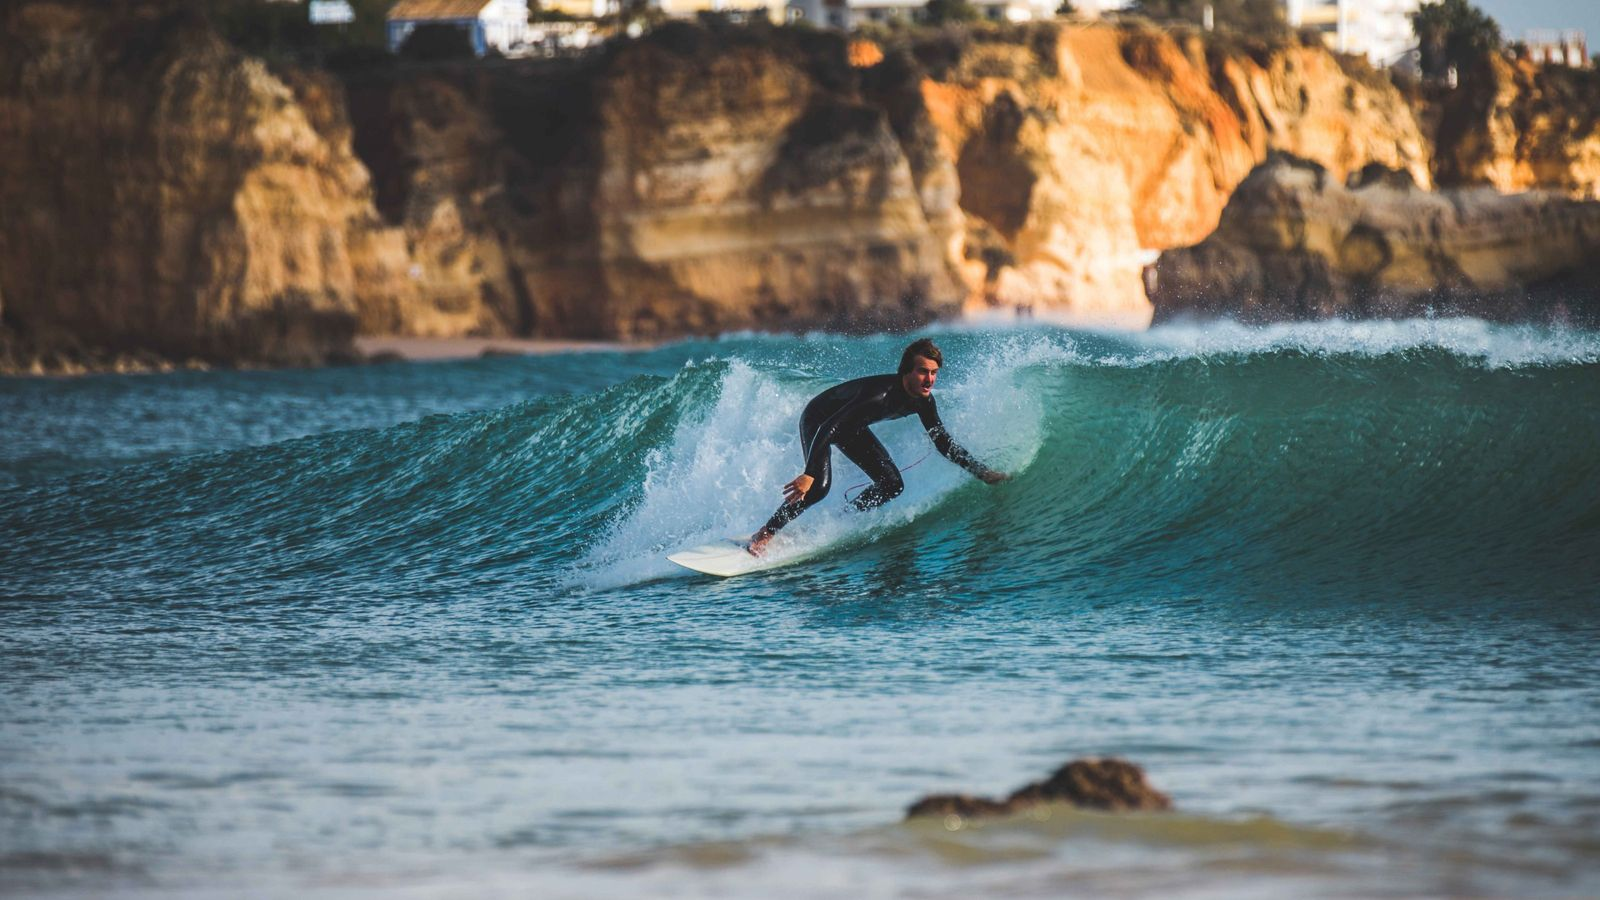 A surf trip needn't break the bank. Portugal, Tenerife and Lanzarote are popular affordable European destinations.